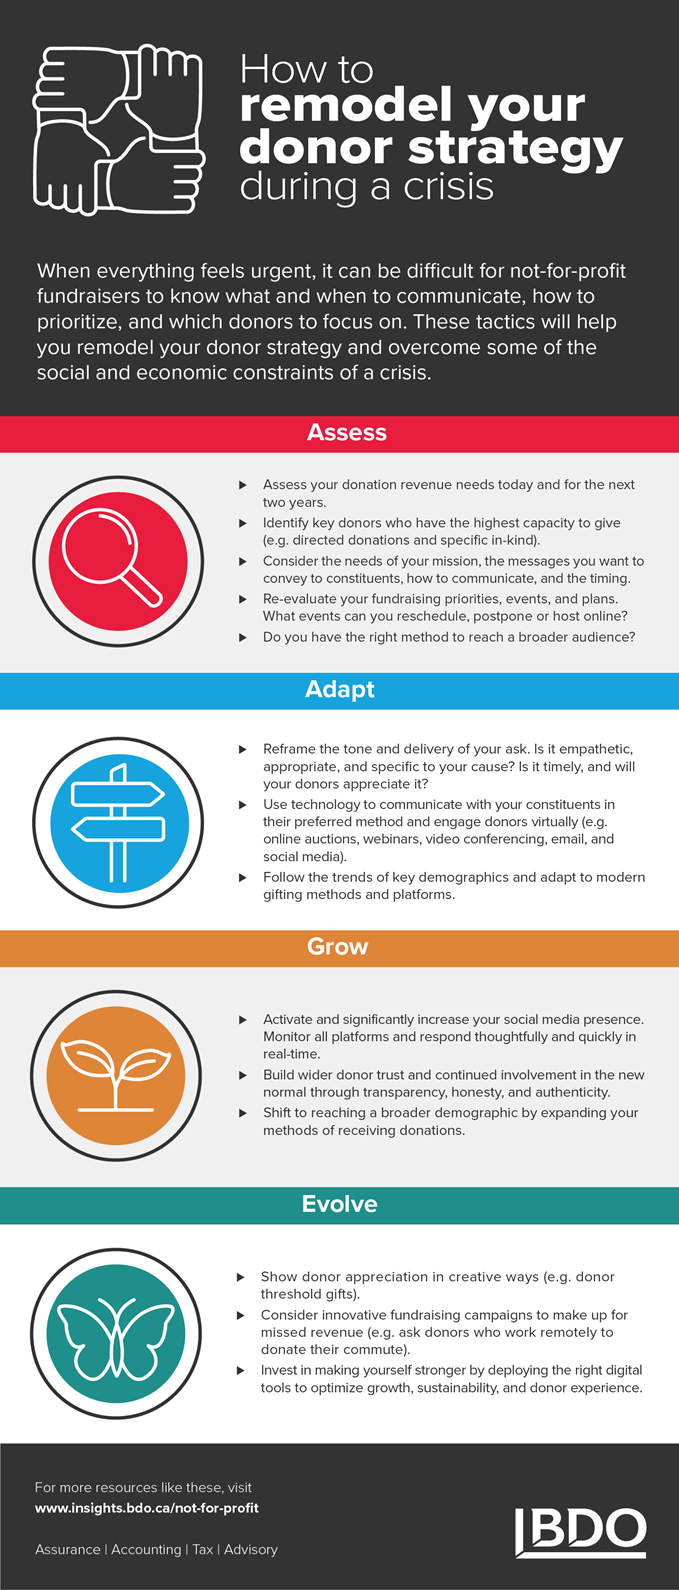 NTL_NPO_12May20_Donor-strategy-infographic_1456x3410-(2).png